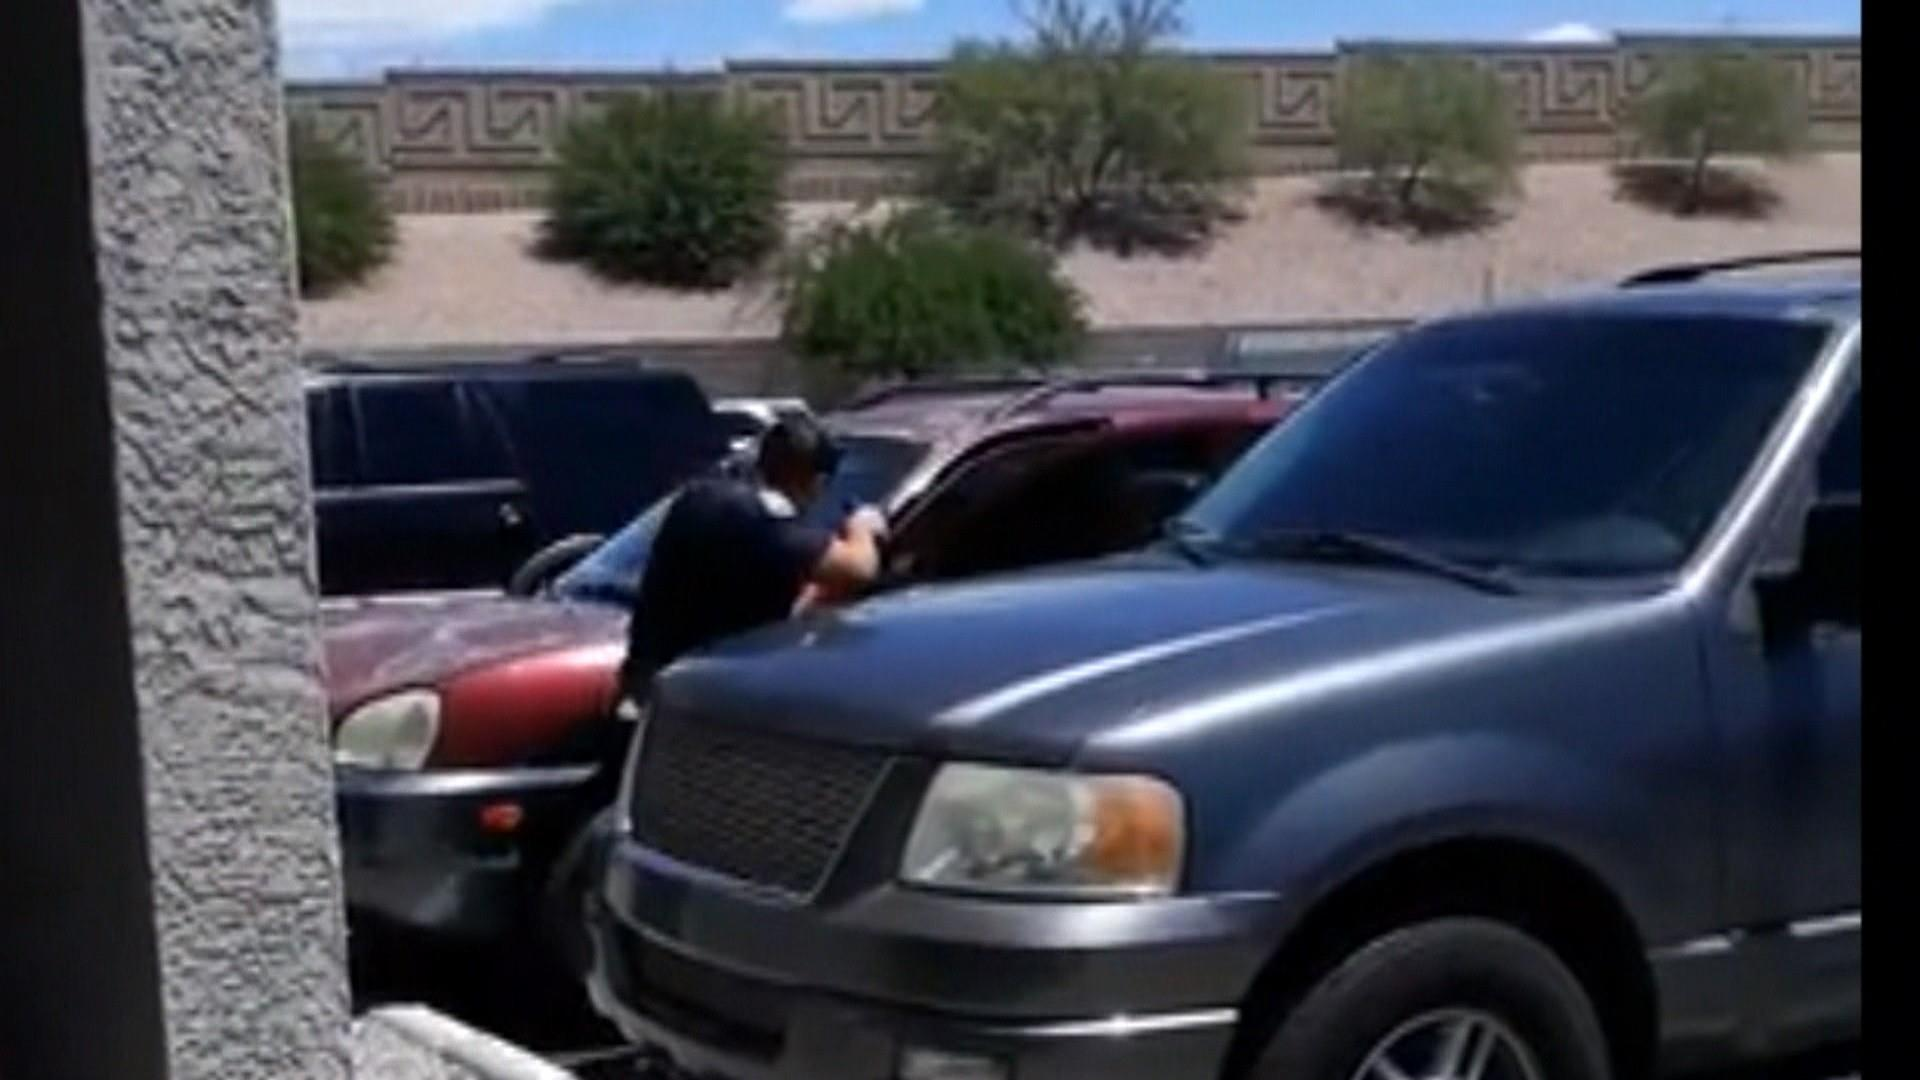 Phoenix police chief speaks out amid outrage over video